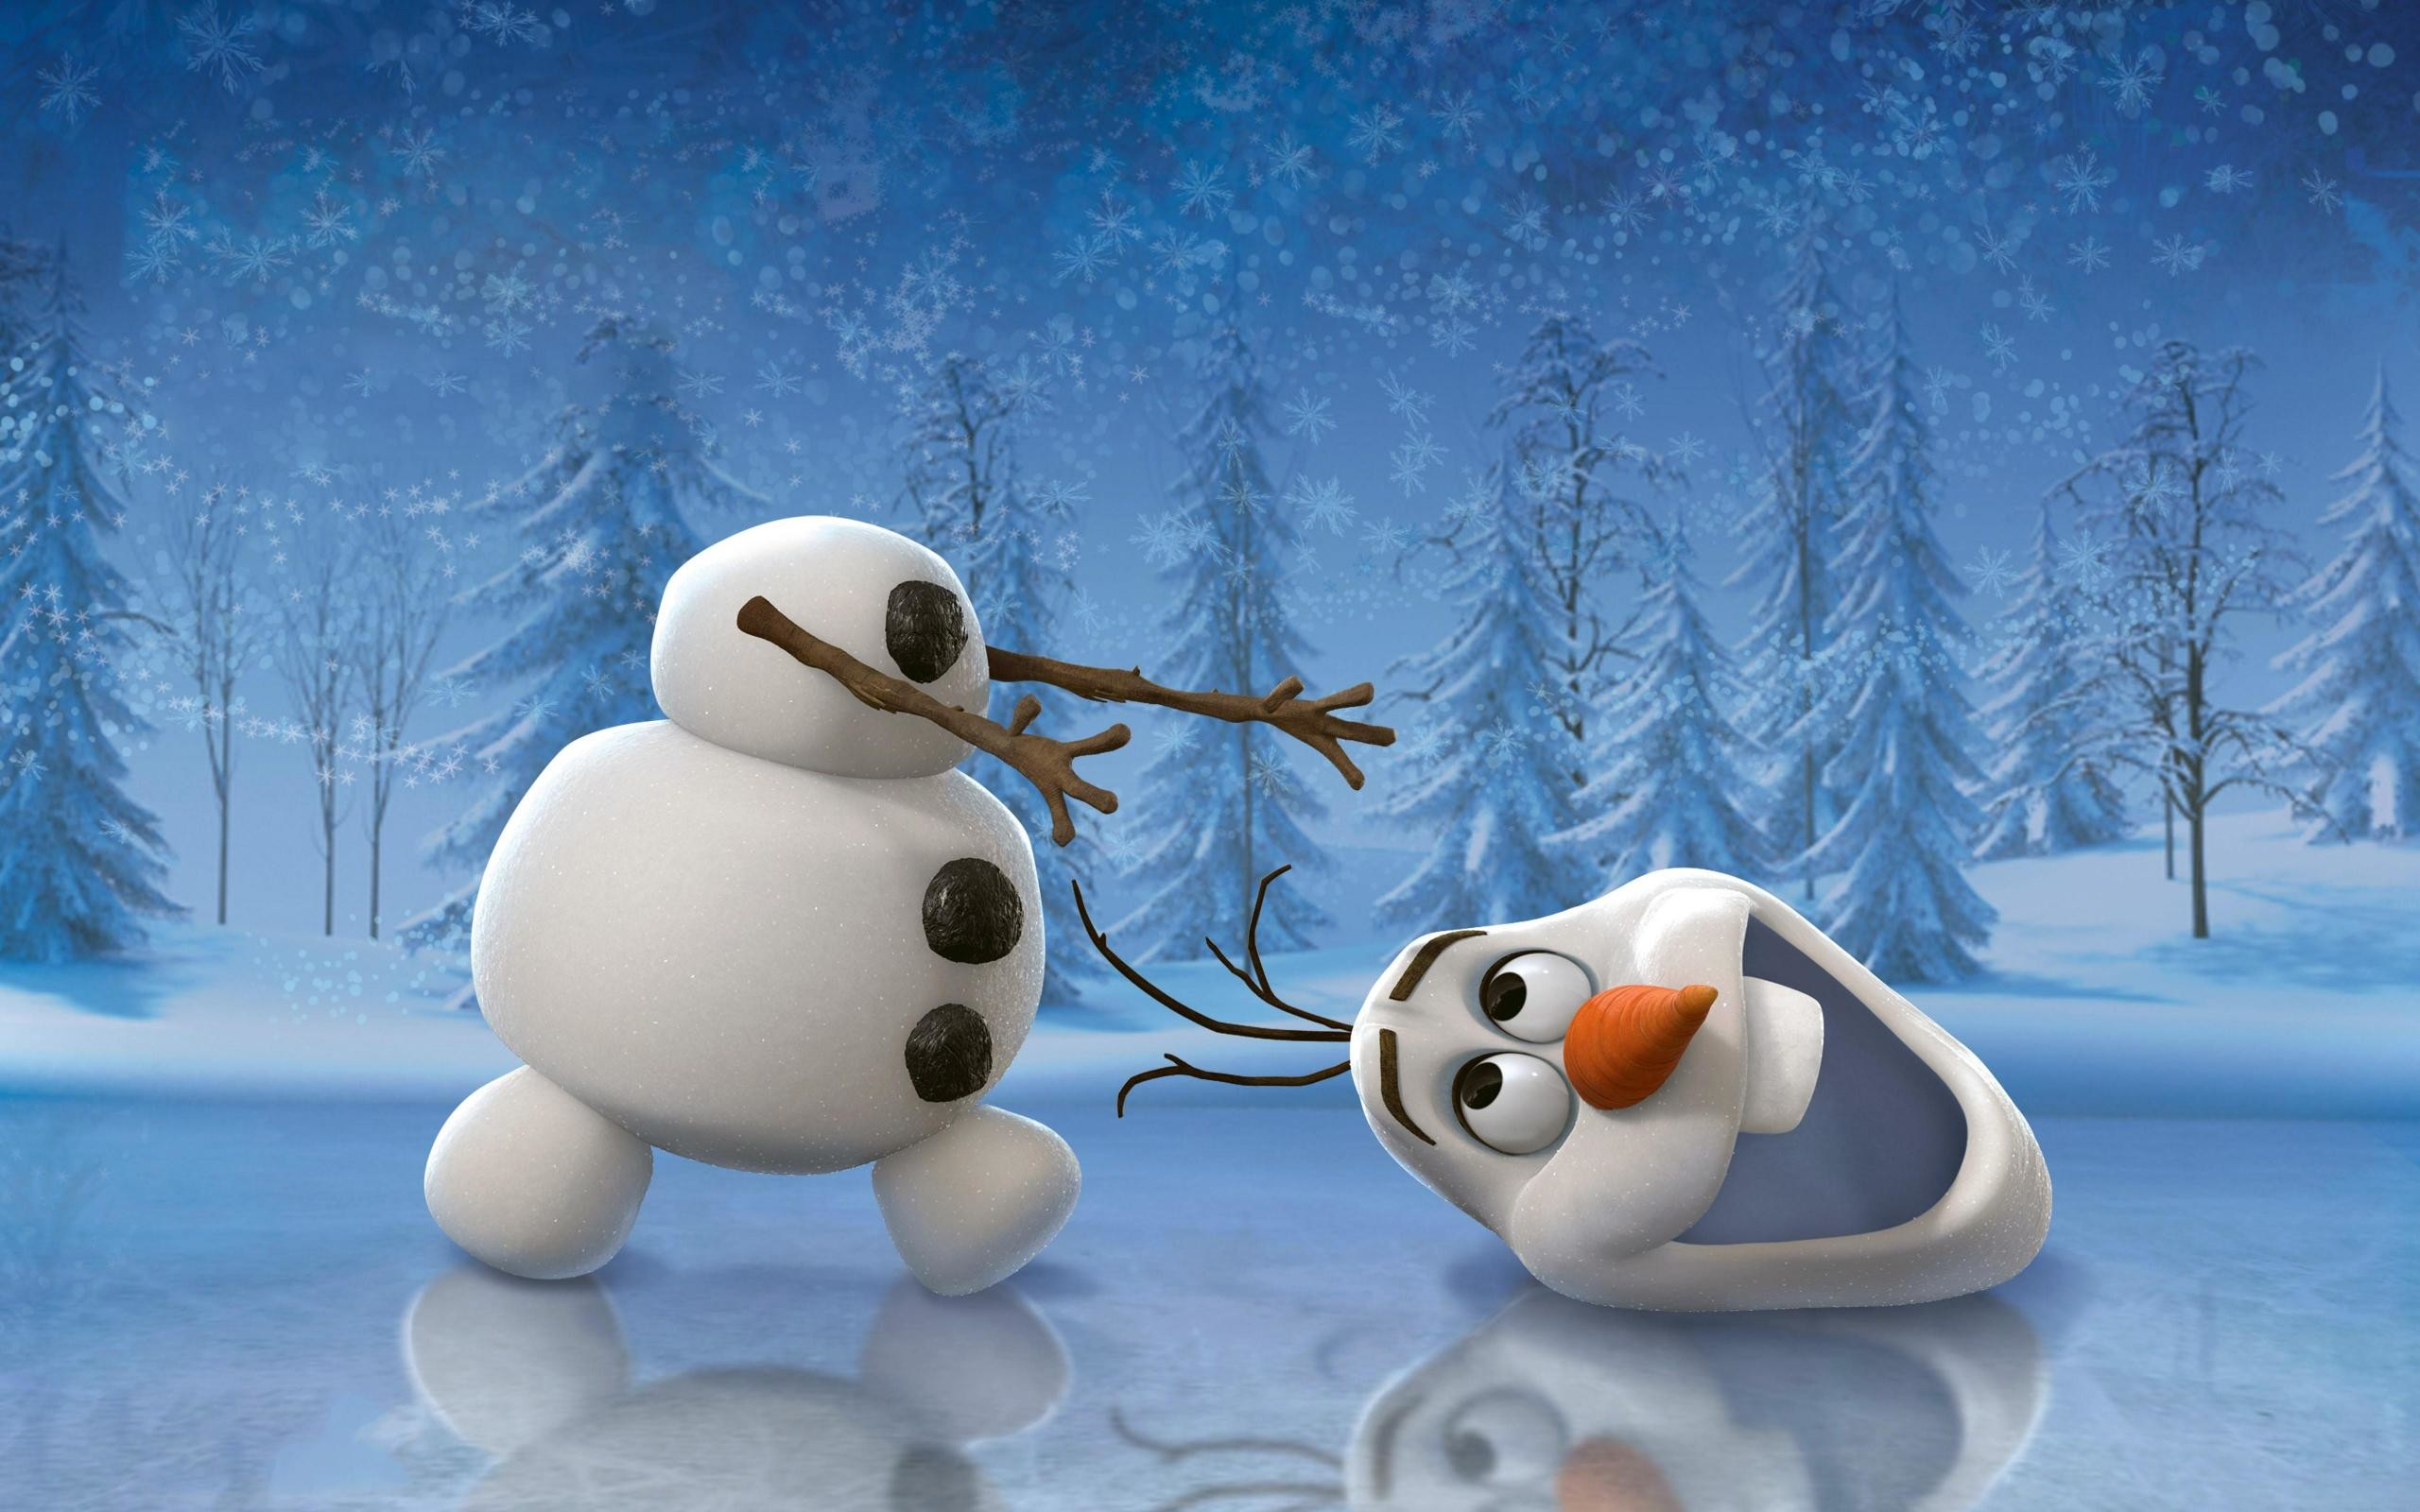 Res: 2560x1600, Olaf for iphone wallpapers mobile.